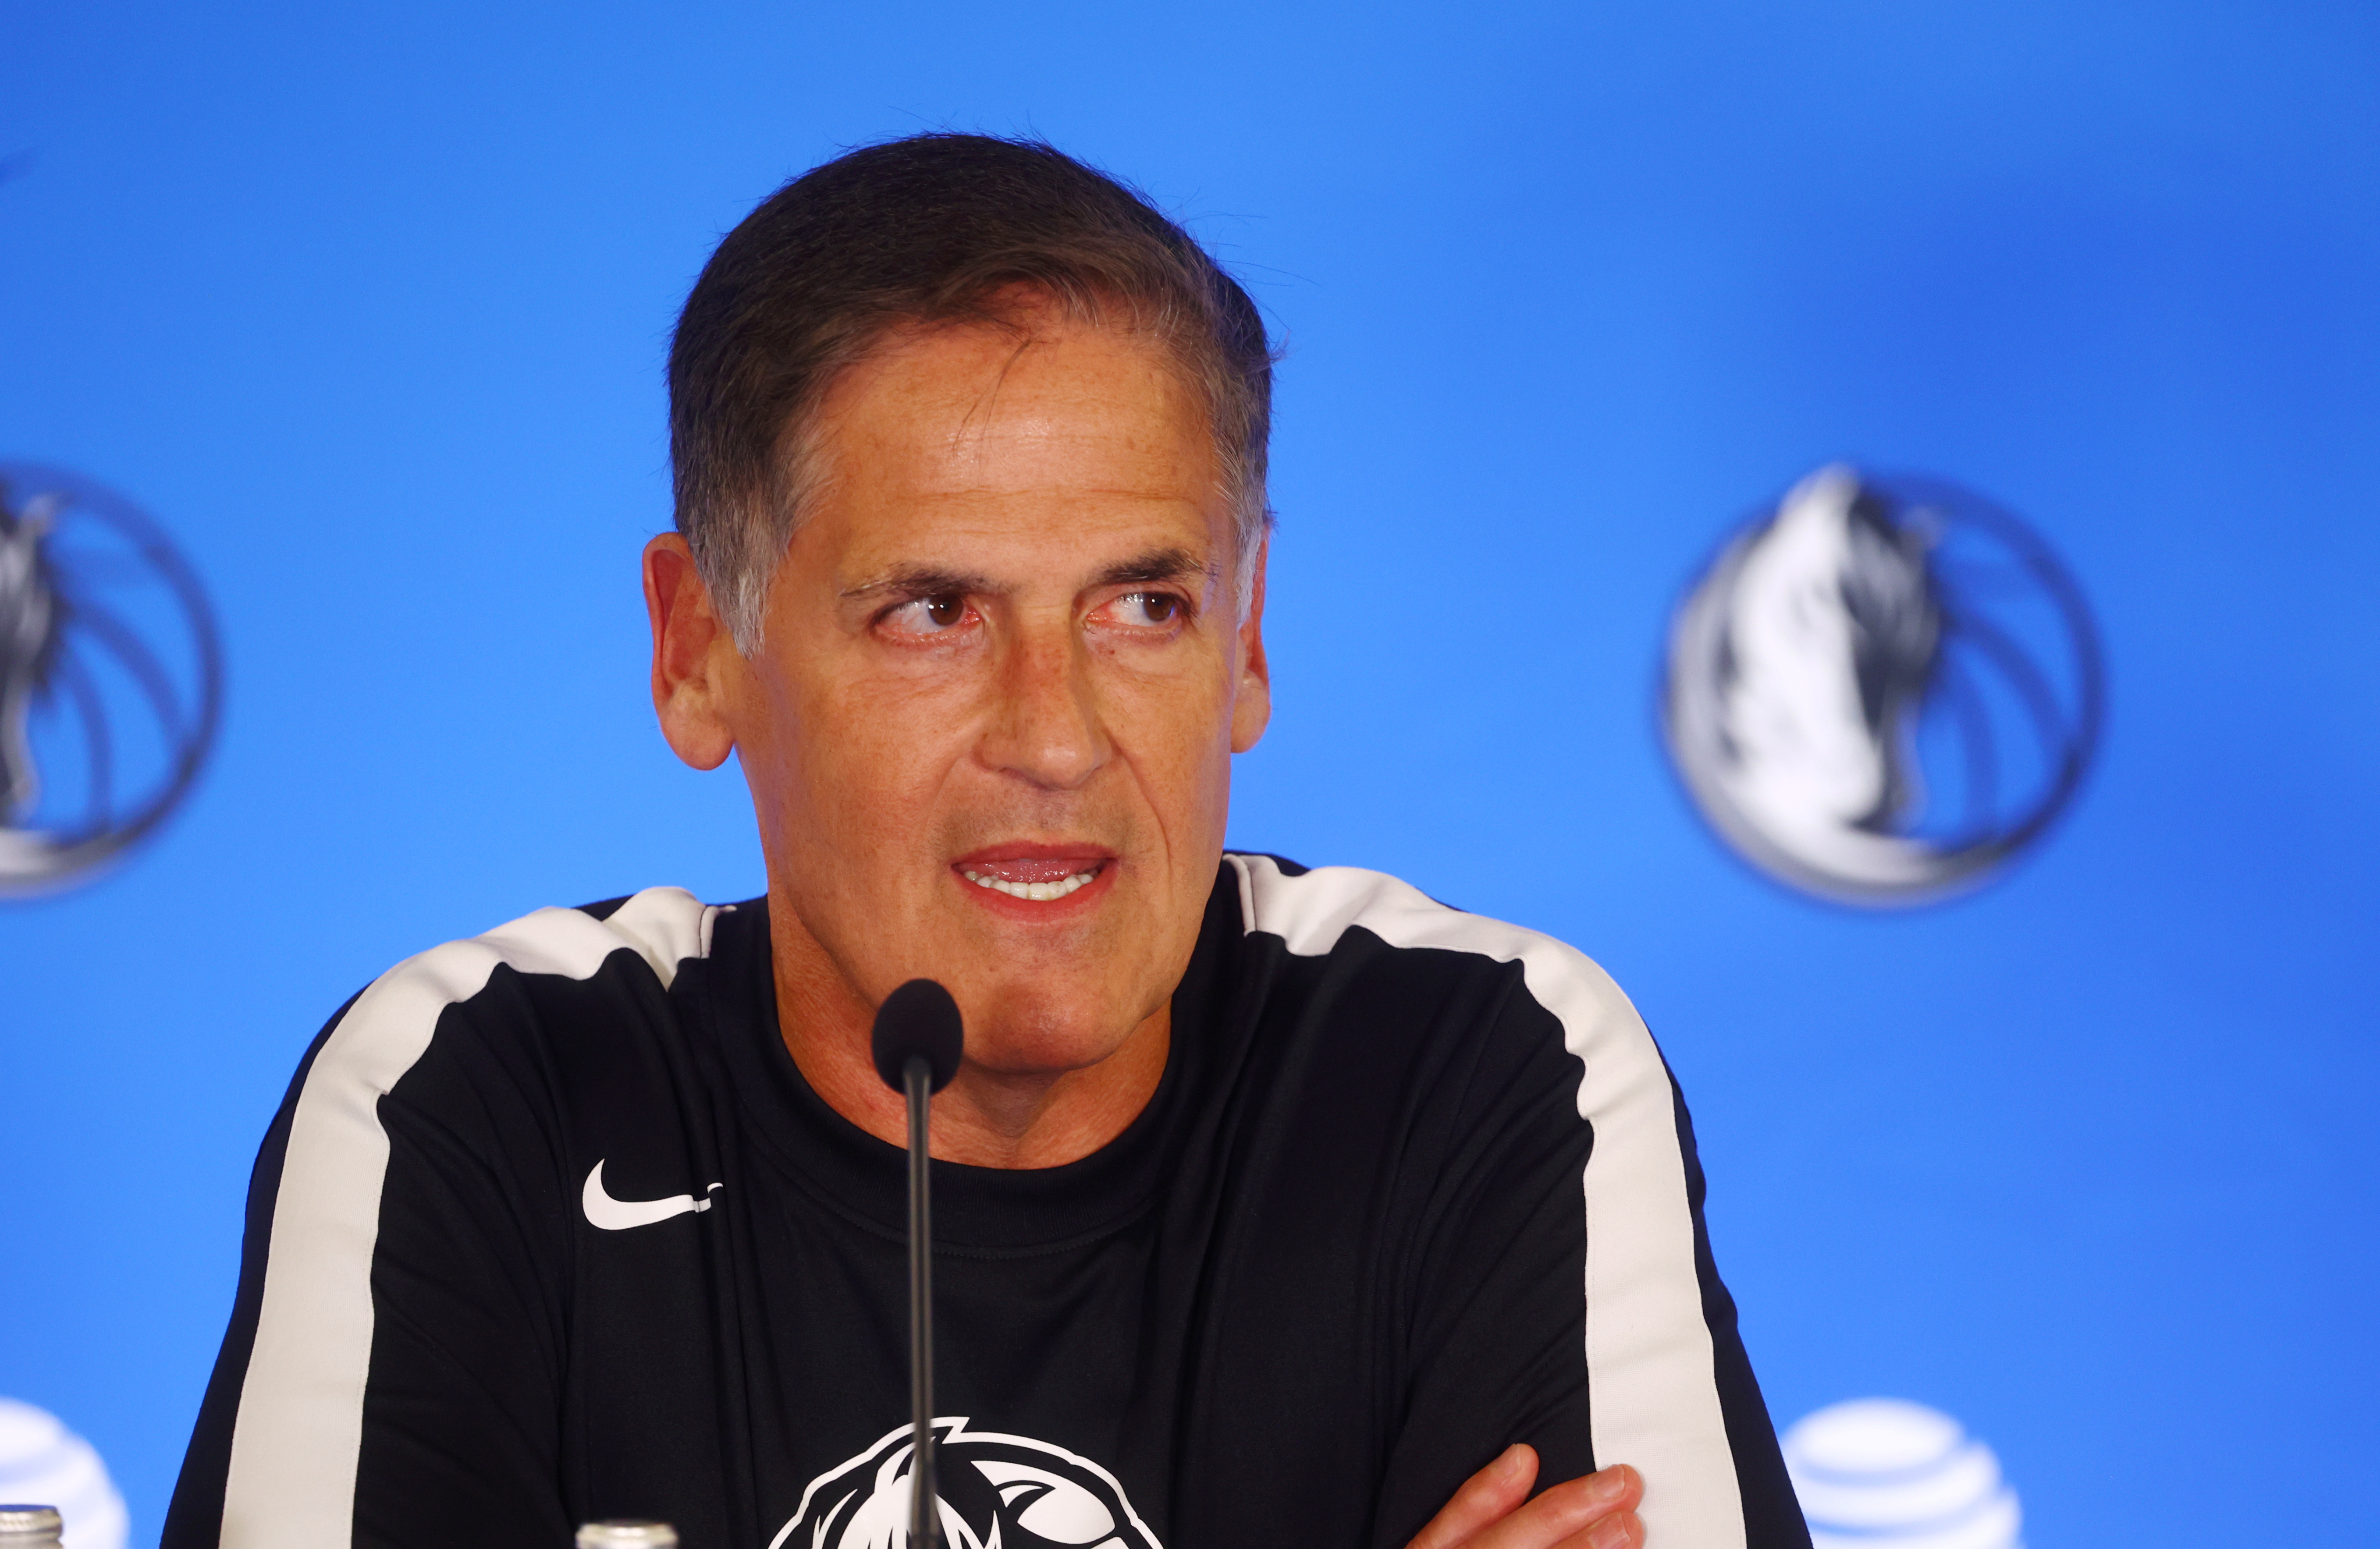 Basketball - Dallas Mavericks' Luka Doncic Press Conference - InterContinental hotel Slovenia, Ljubljana, Slovenia - August 10, 2021 Dallas Mavericks' owner Mark Cuban during the press conference after Luka Doncic signed a contract extension REUTERS/Borut Zivulovic/File Photo